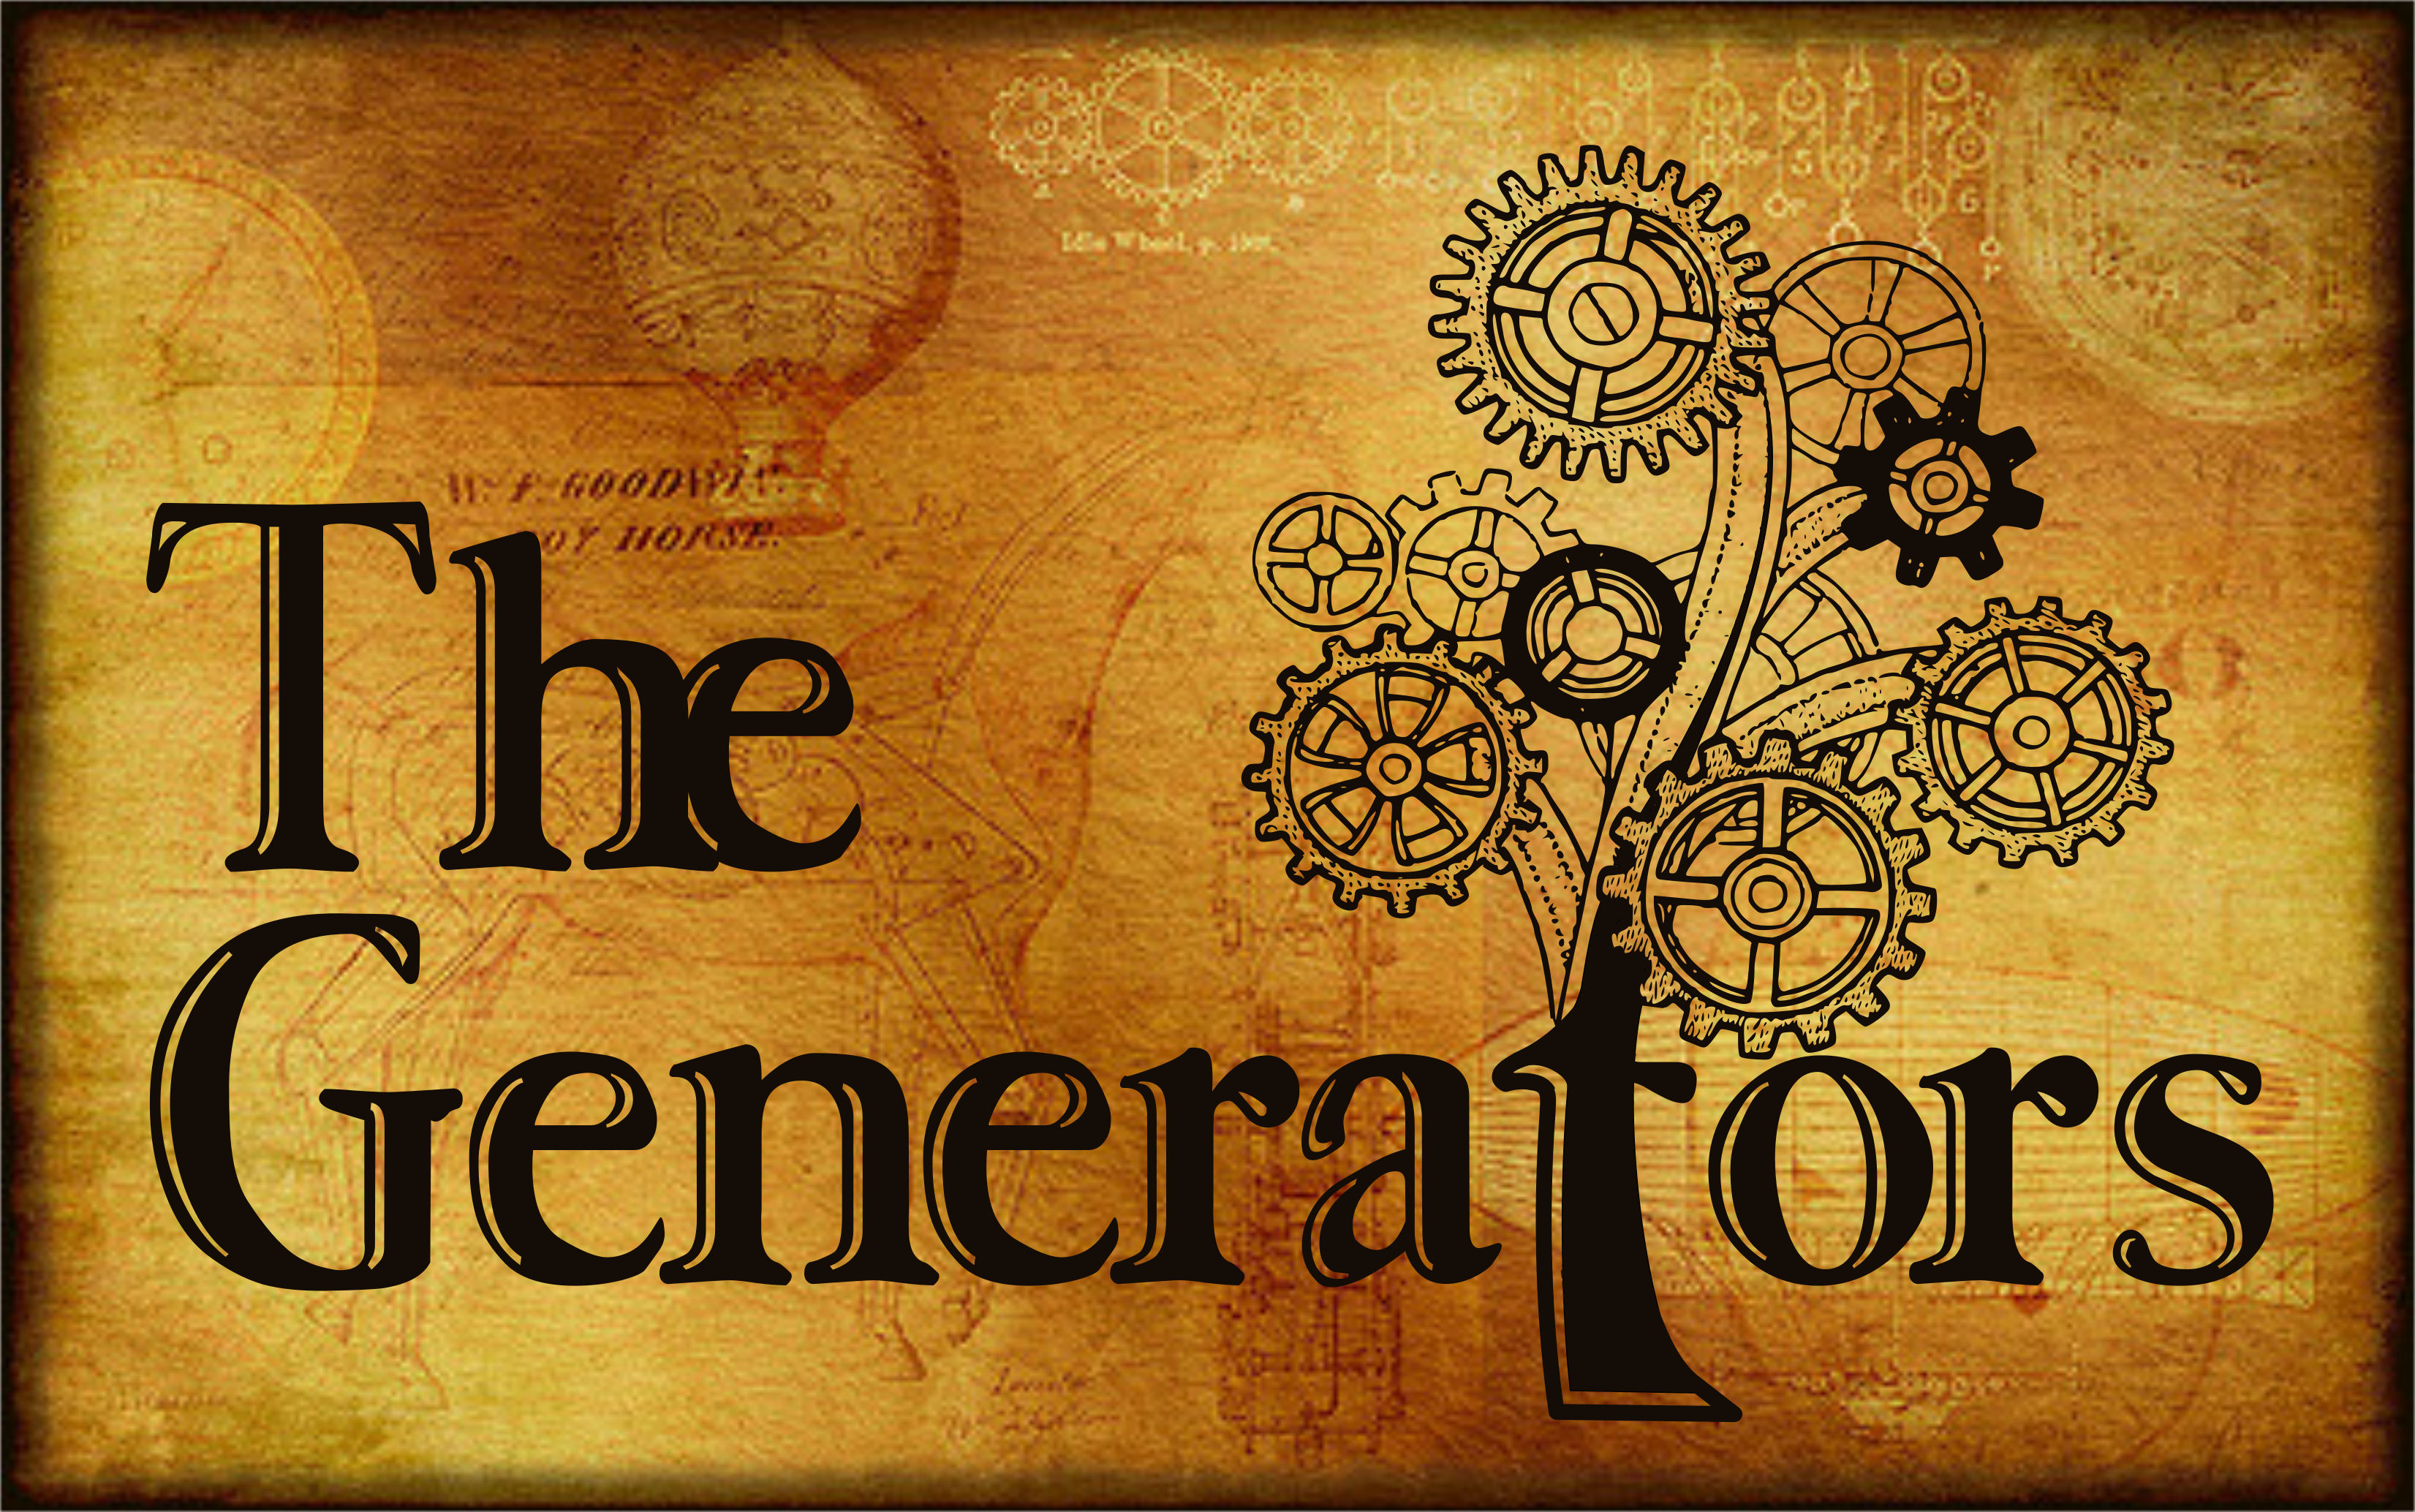 Generators: Resources of the National Genealogical Society